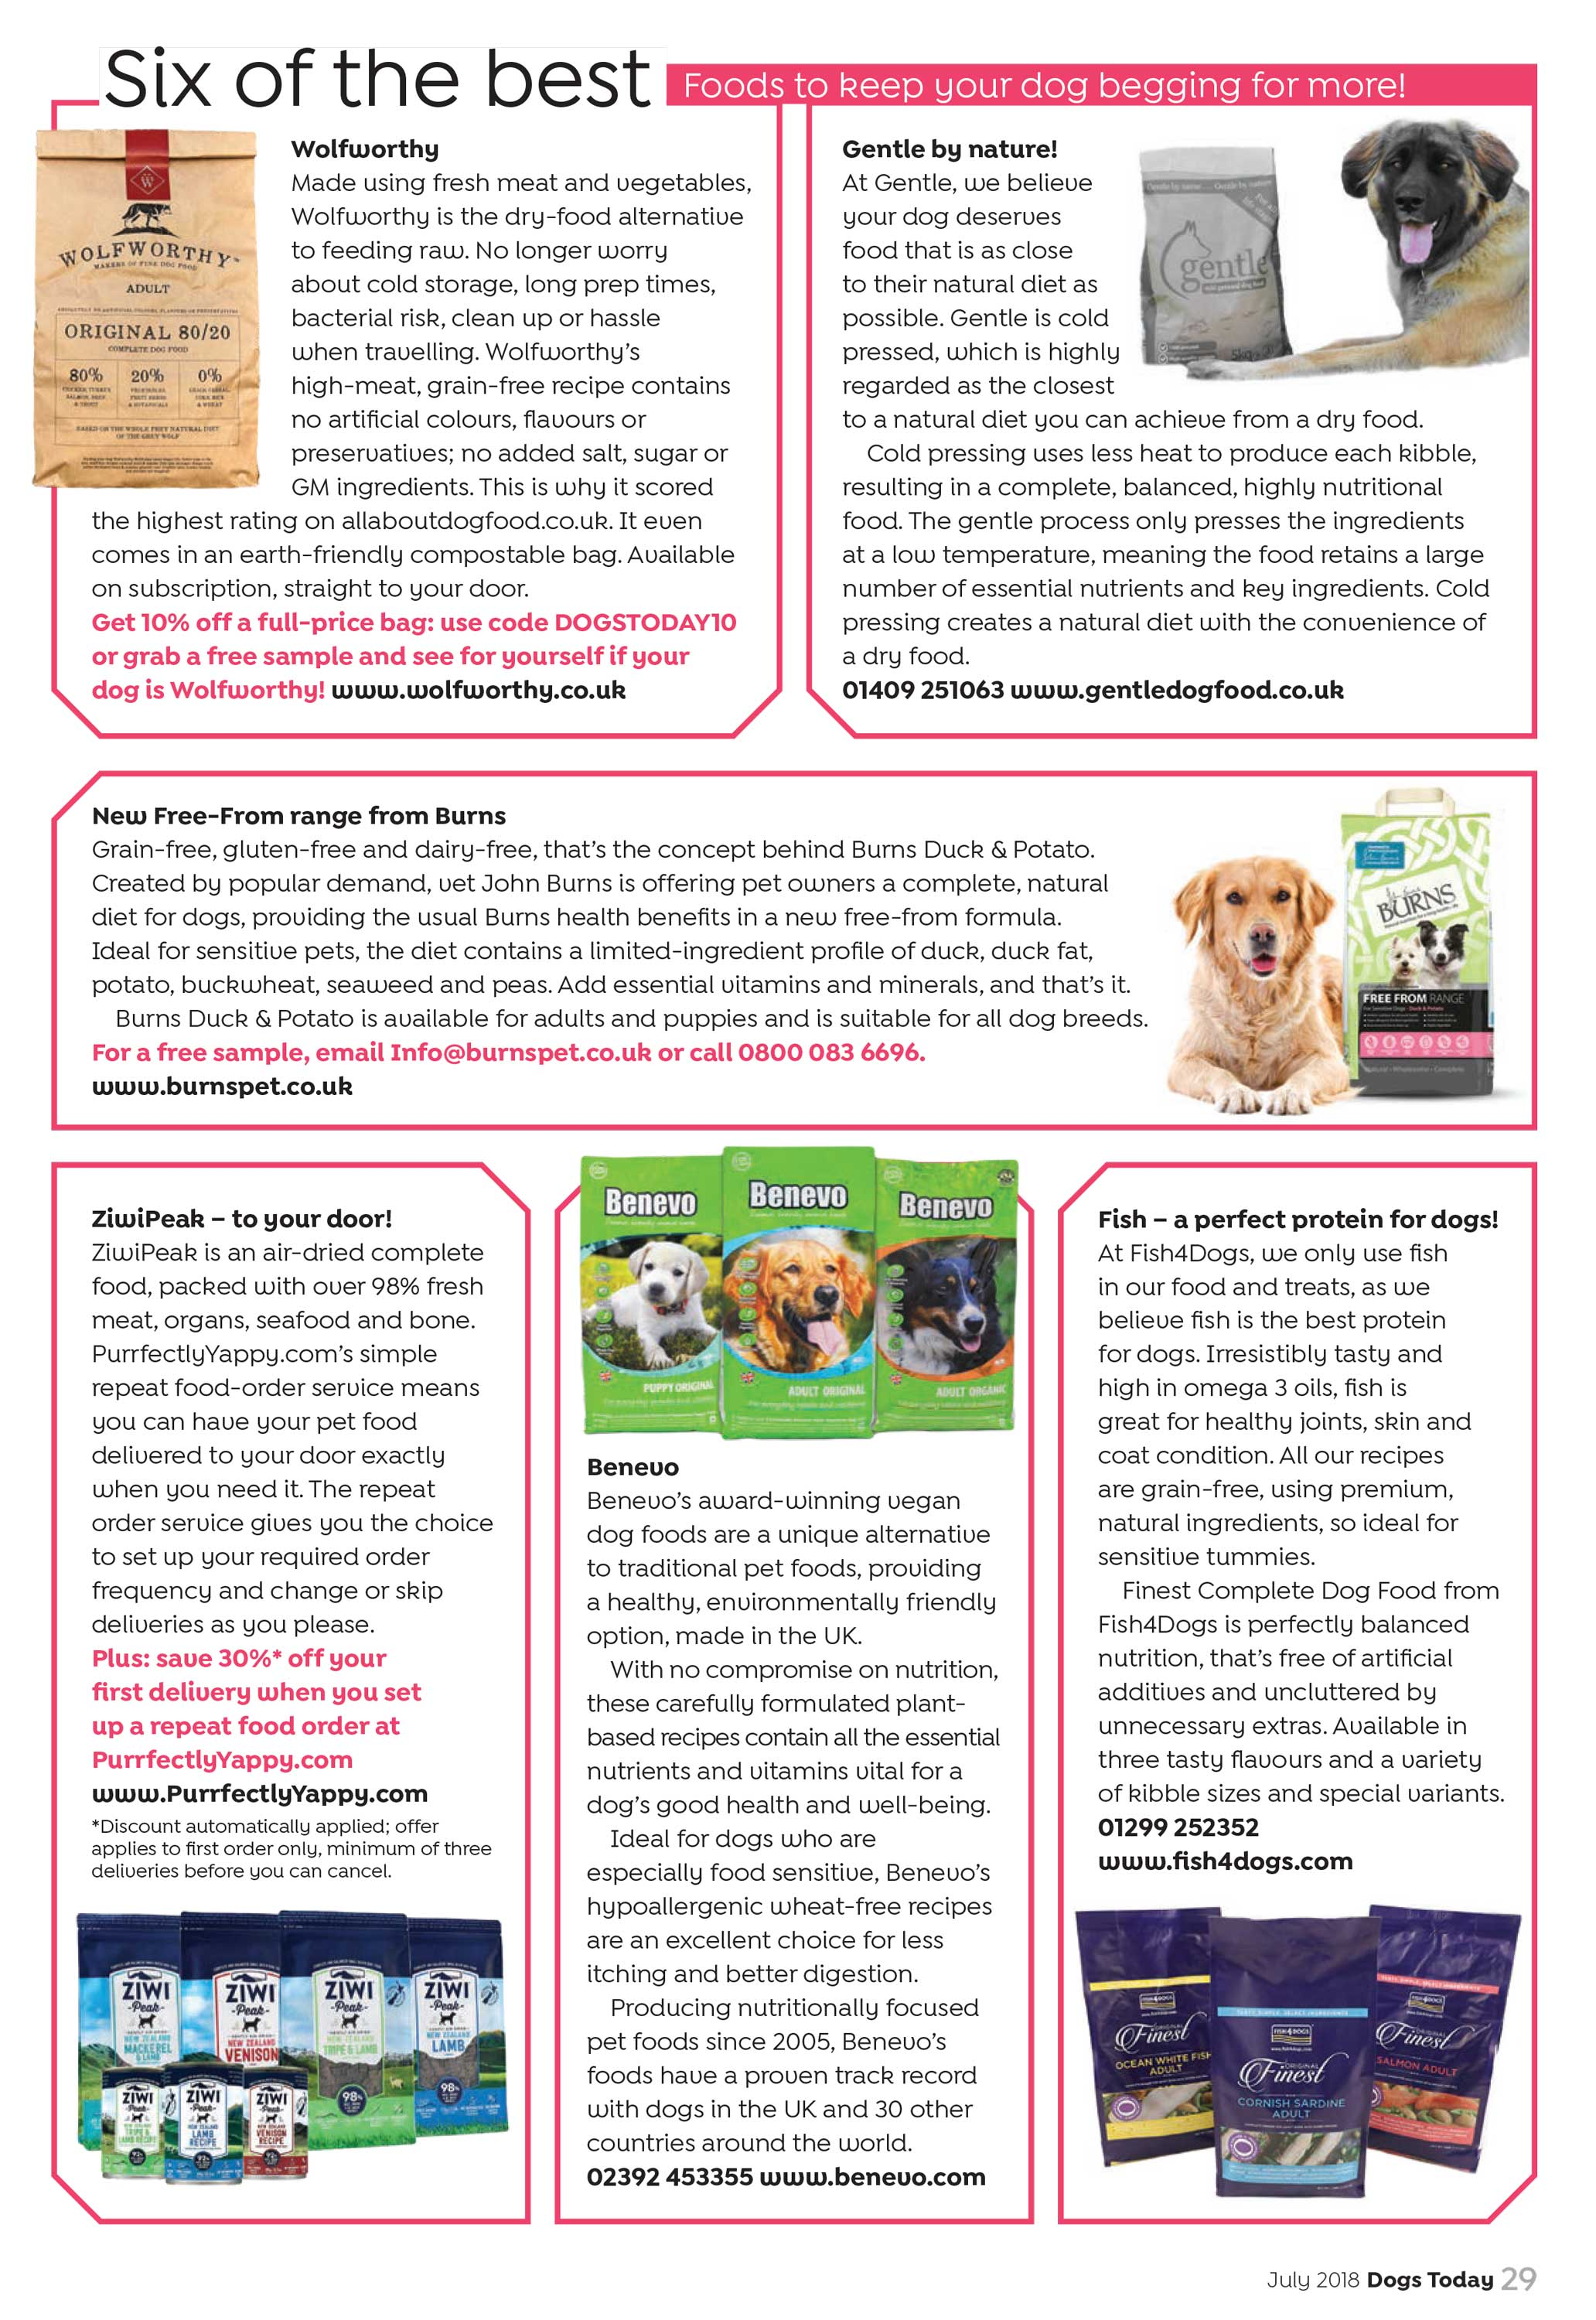 The Best Dog Food >> Six Of The Best Dog Foods Dogs Today Magazine